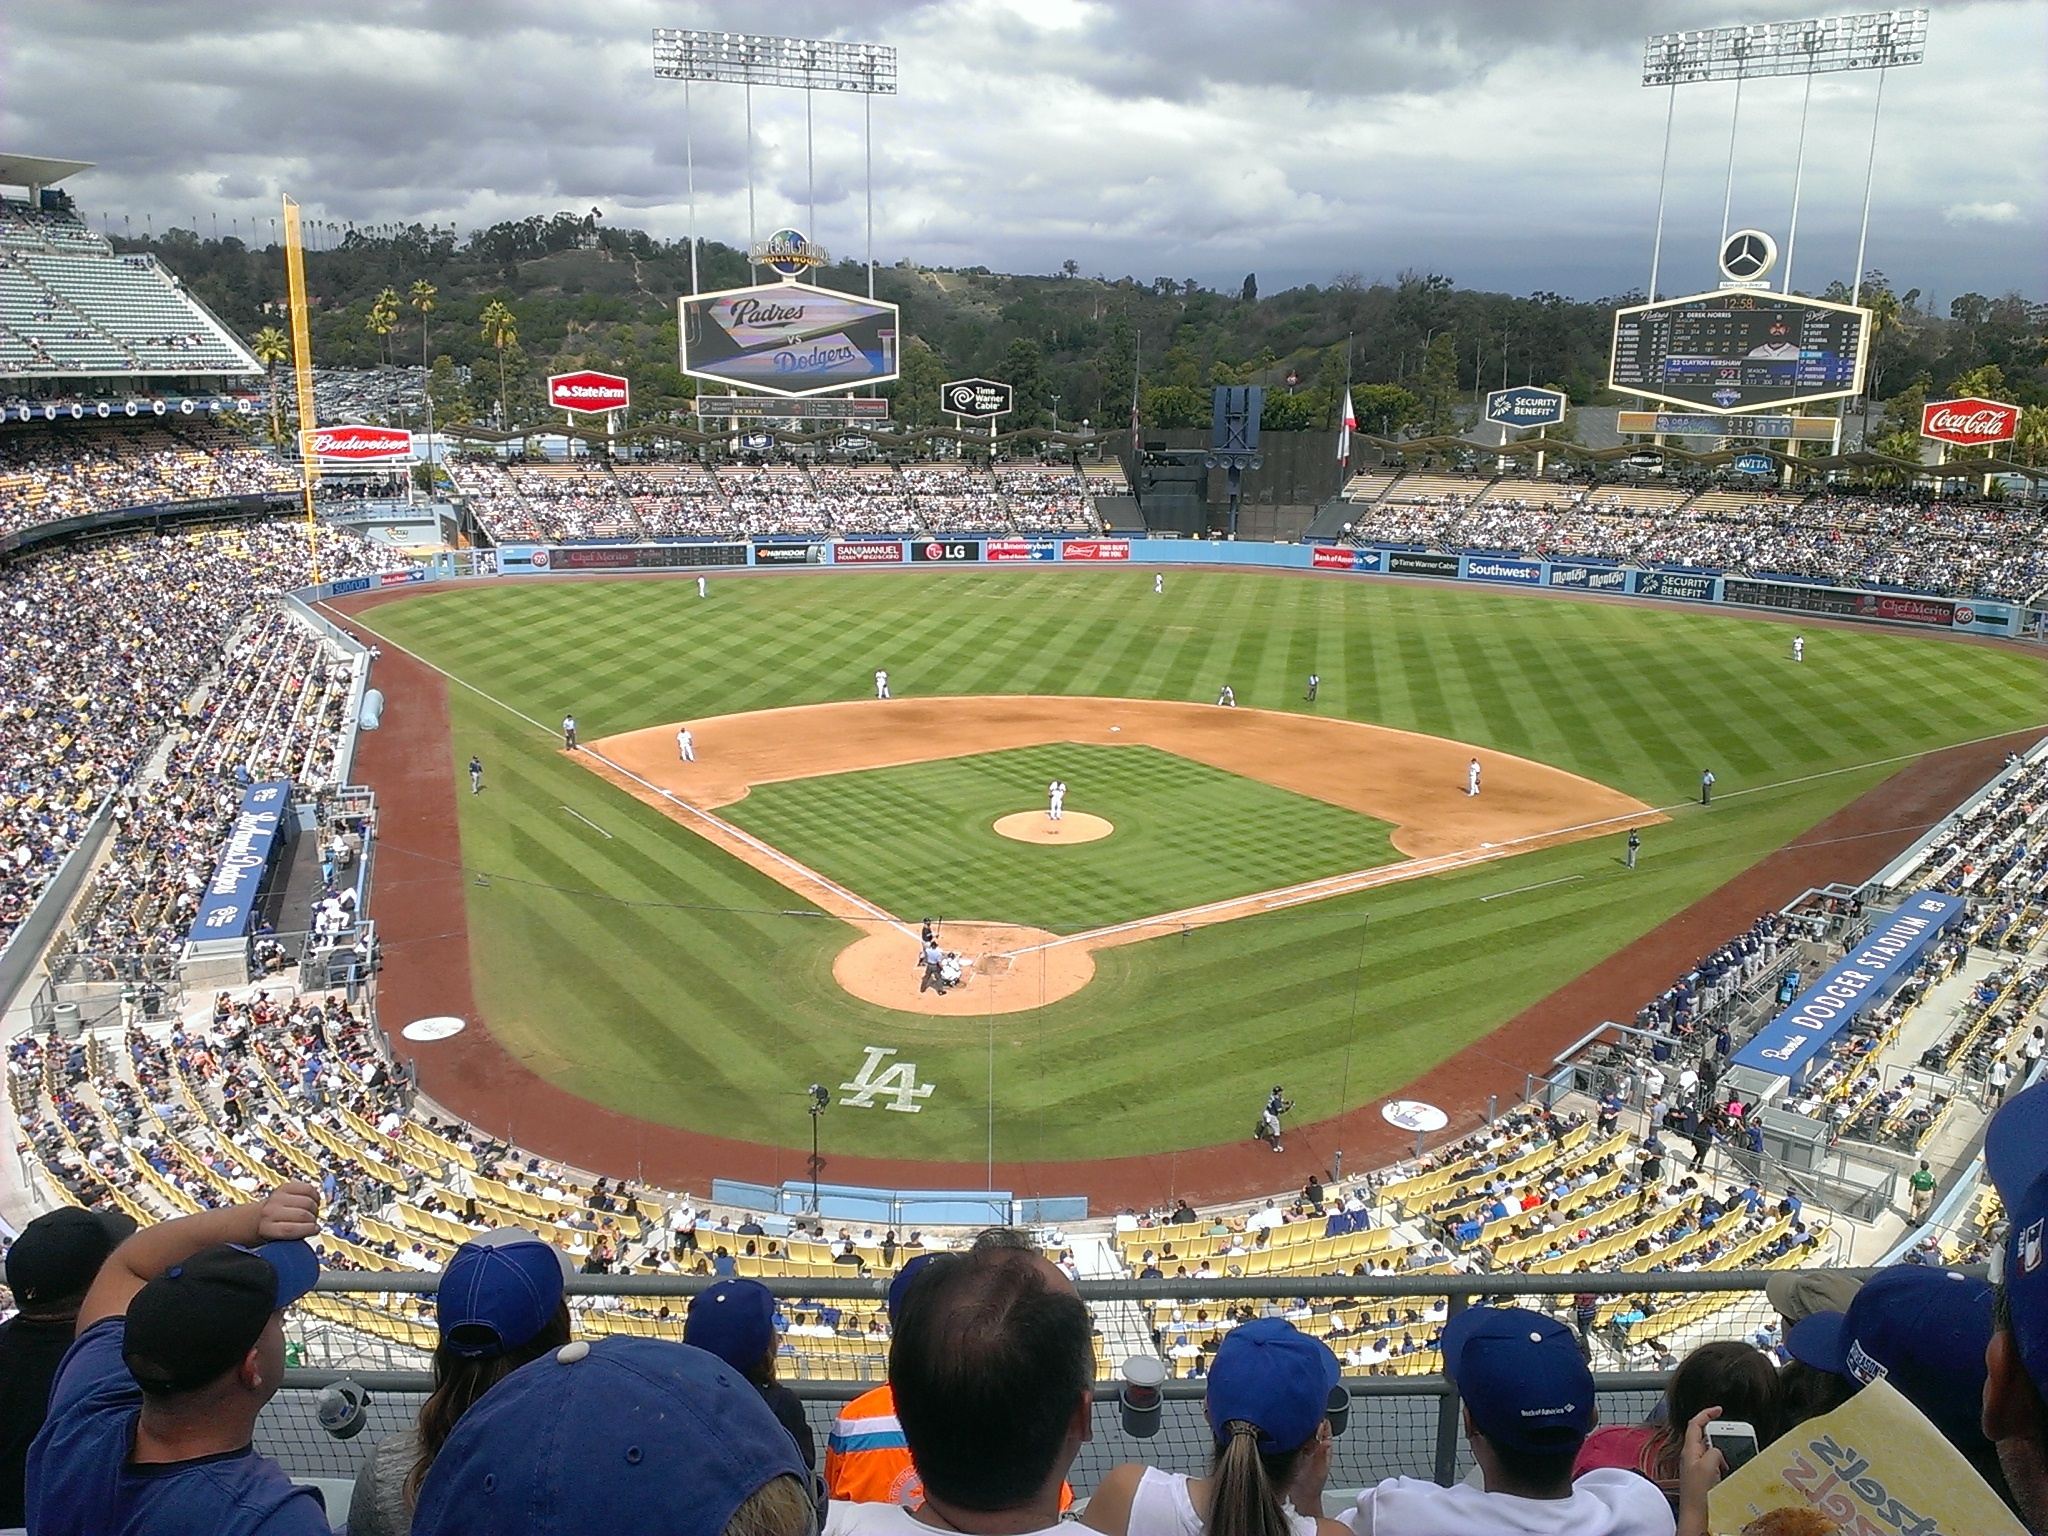 https://upload.wikimedia.org/wikipedia/commons/d/d2/Dodger_Stadium_field_from_upper_deck_2015-10-04.jpg